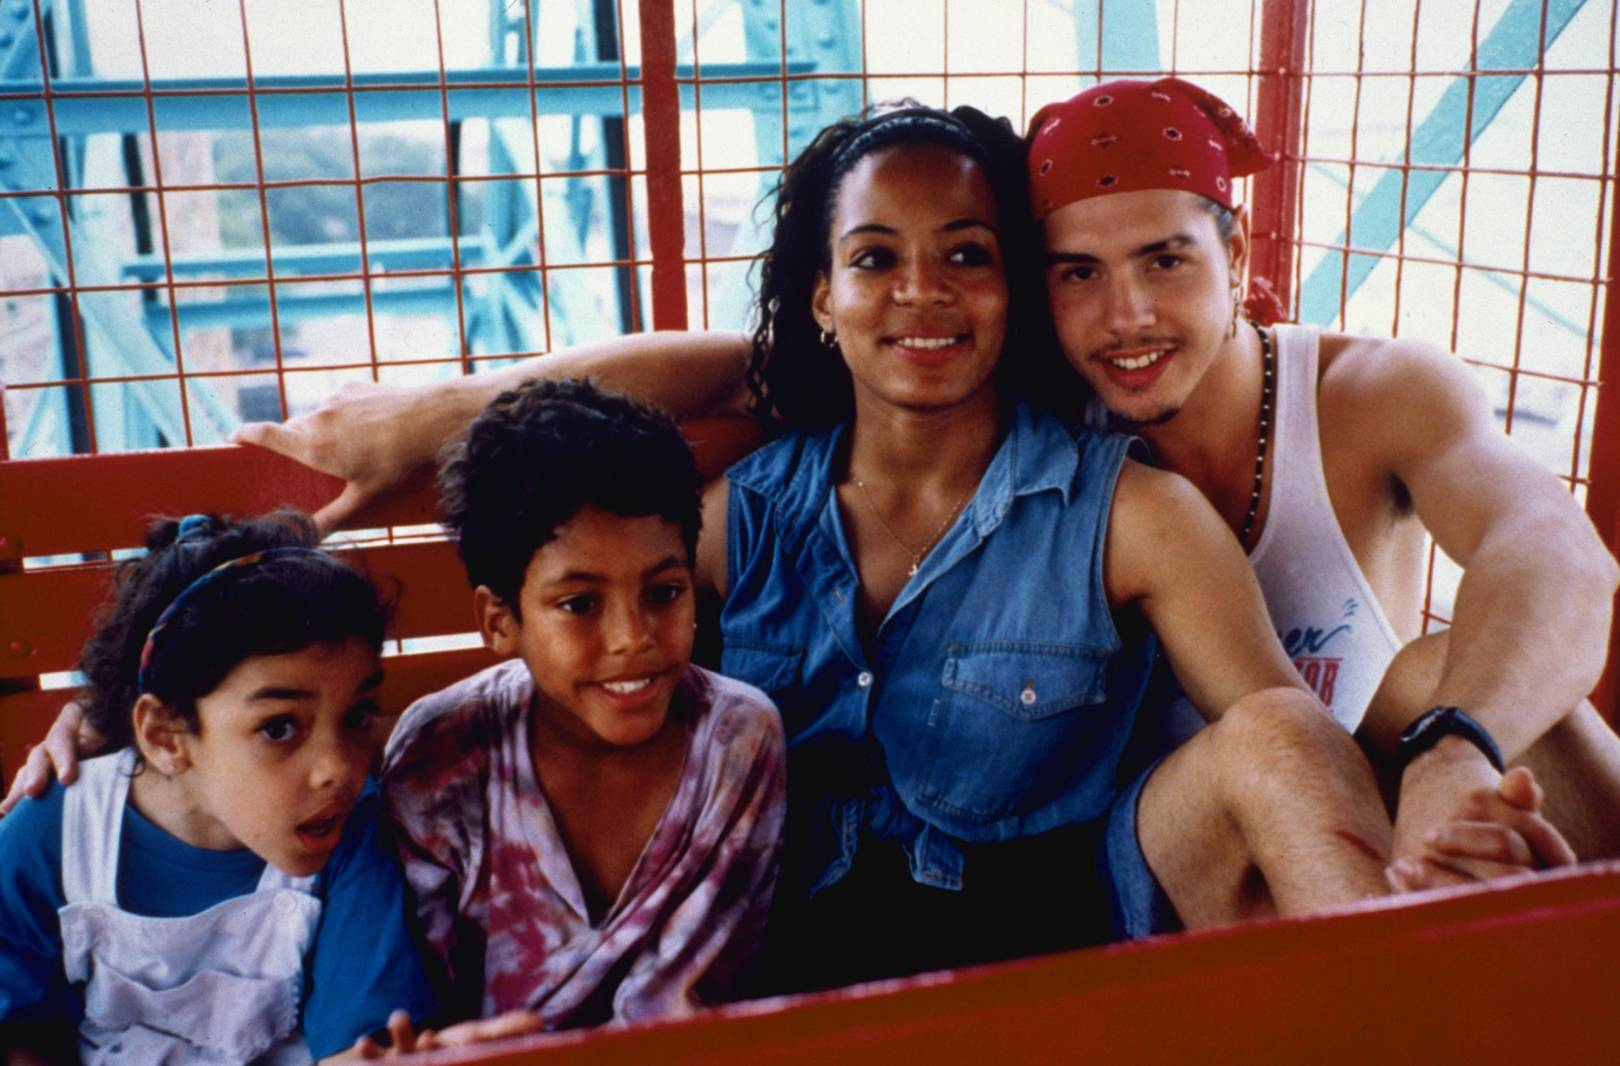 25 Years Ago, 'I Like It Like That' Brought an Afro-Latina Story to Theaters. What Were the Reviews Like?